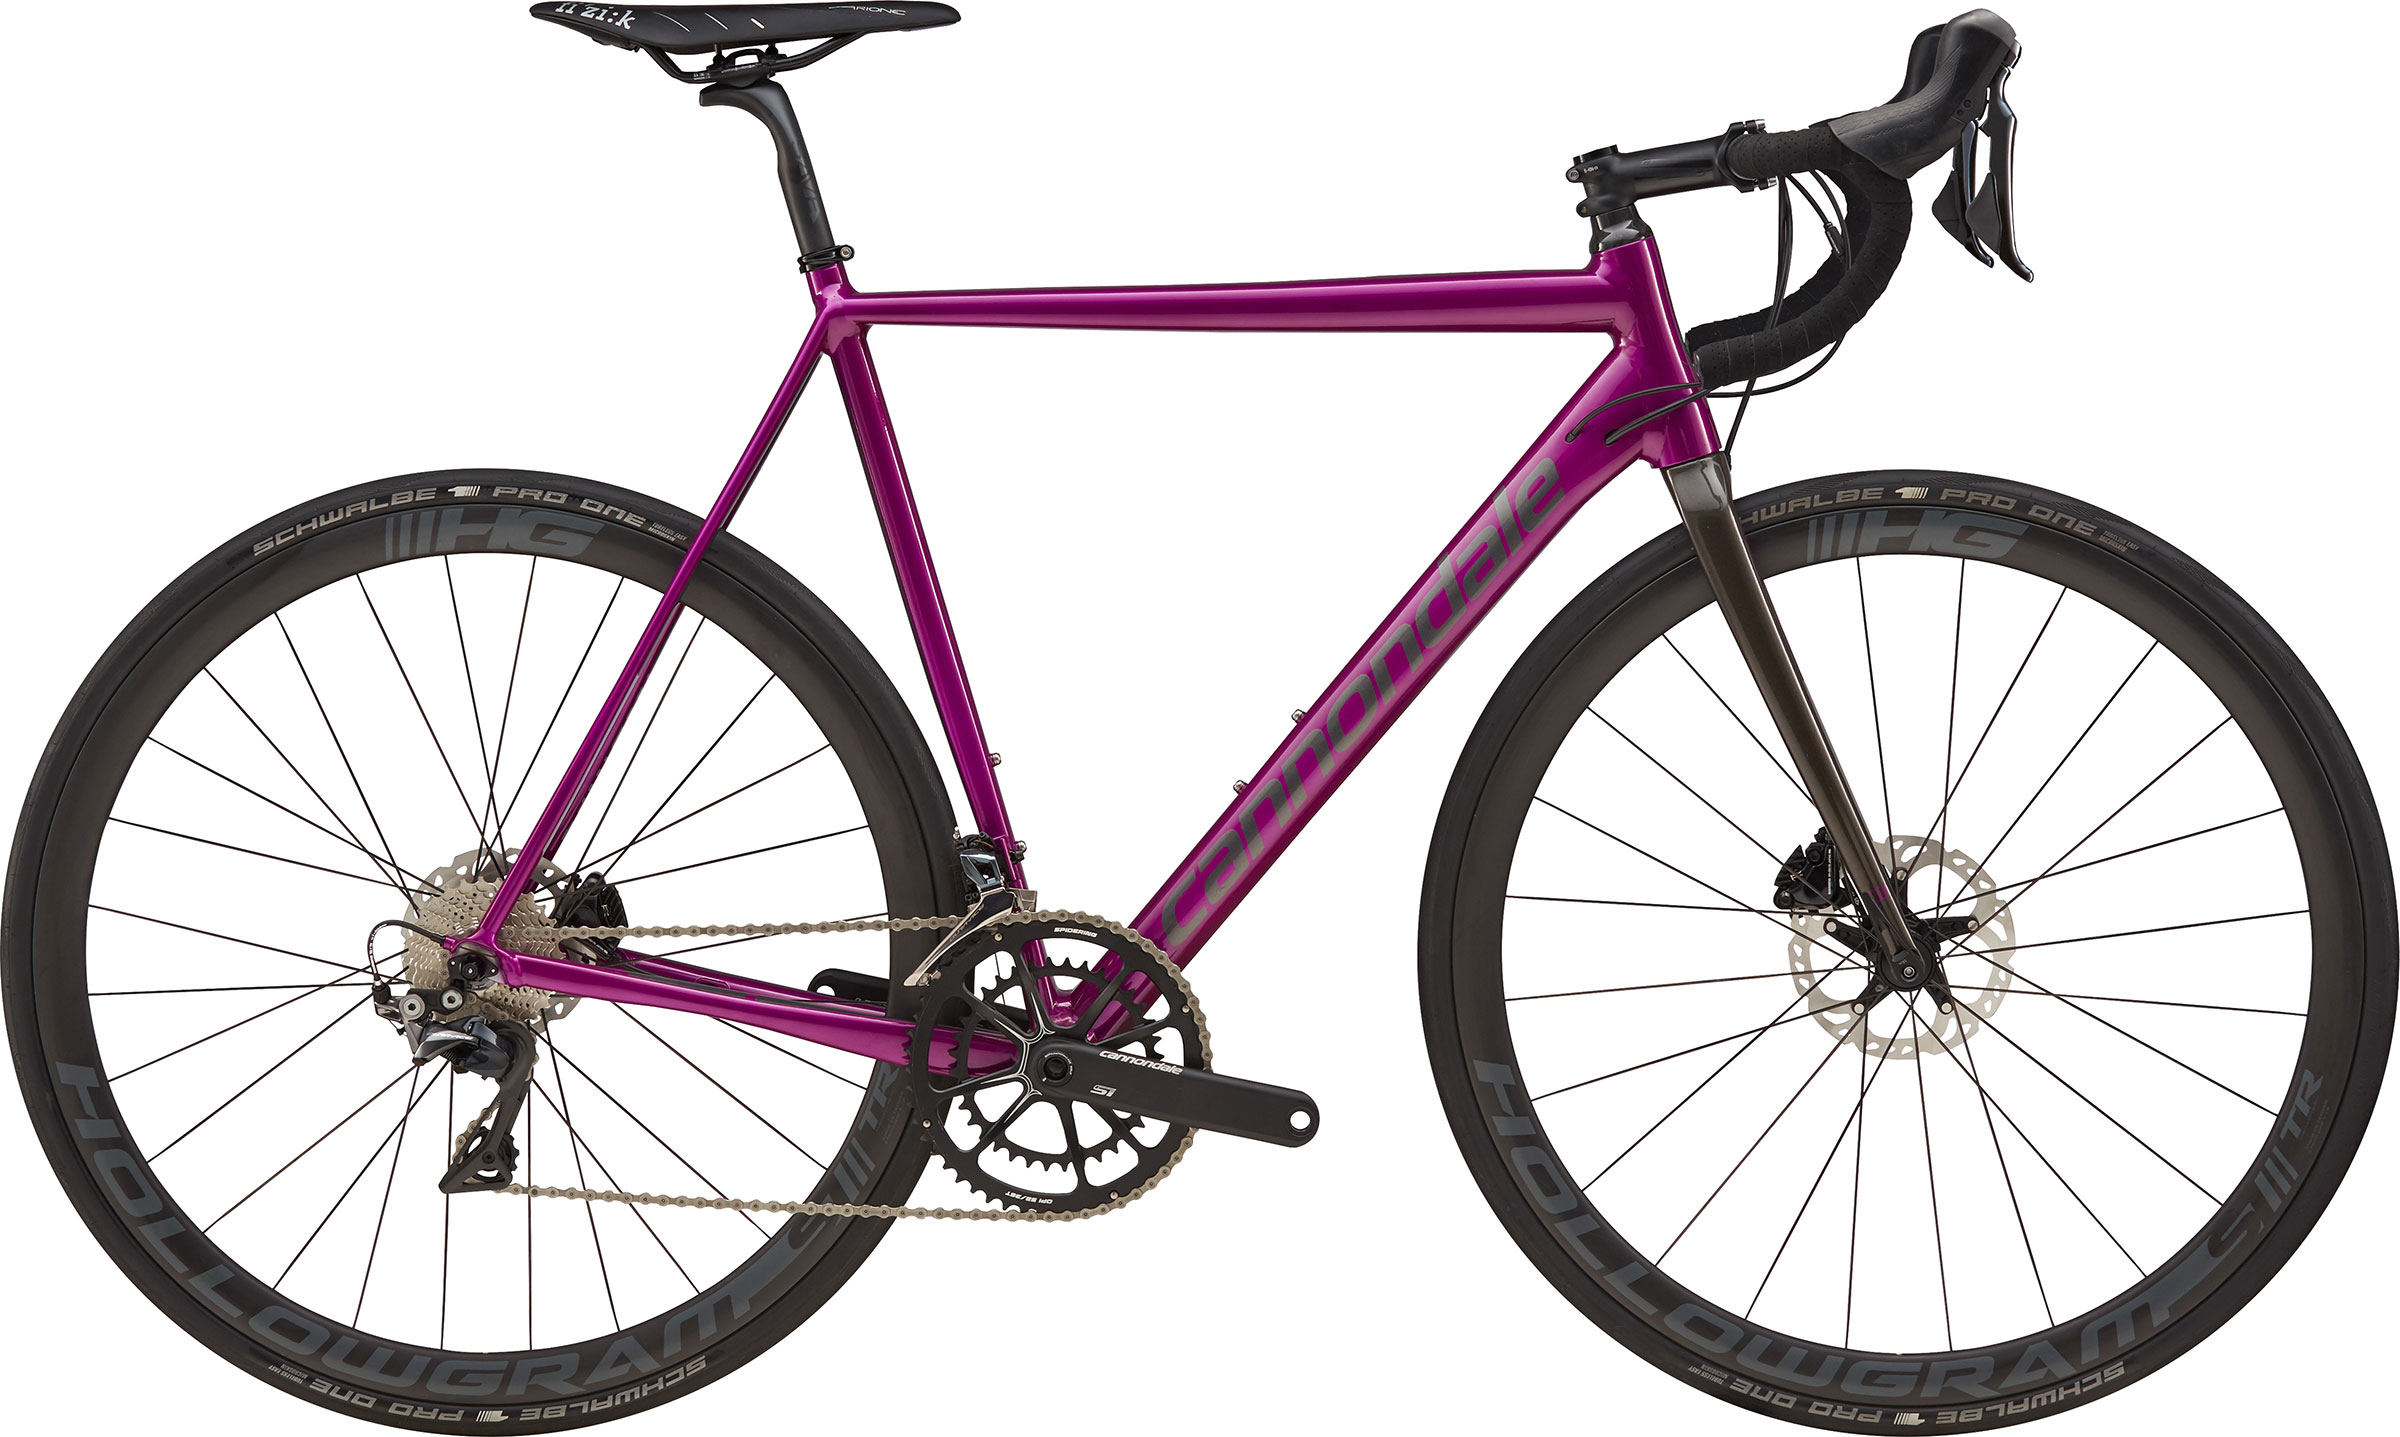 487b0065233 Cannondale CAAD12 Disc Dura-Ace - Hart's Cyclery